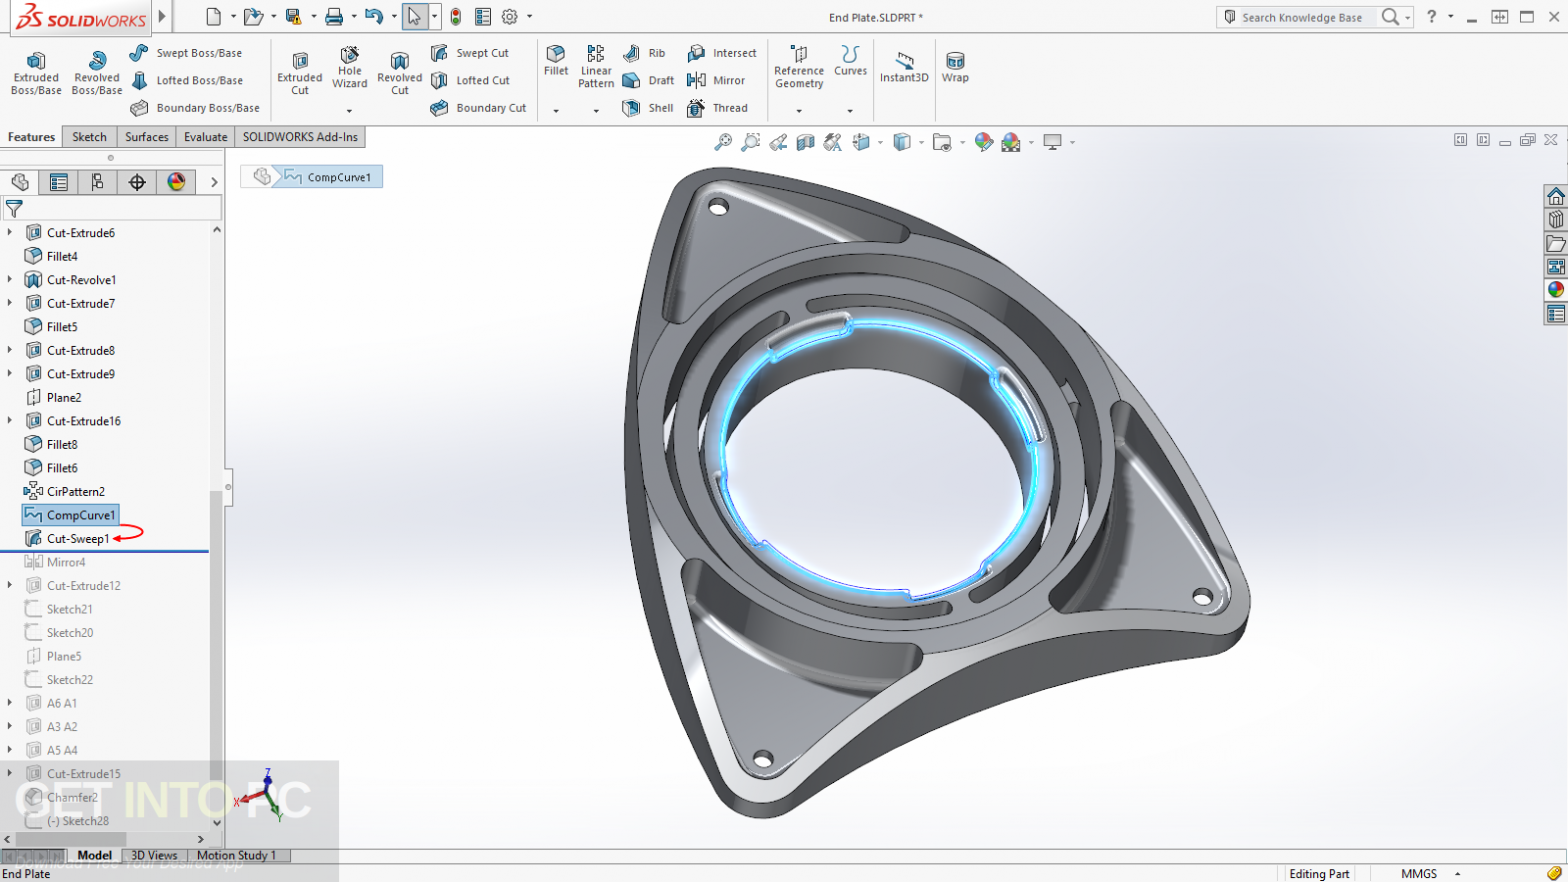 SolidWorks 2016 Latest Version Download